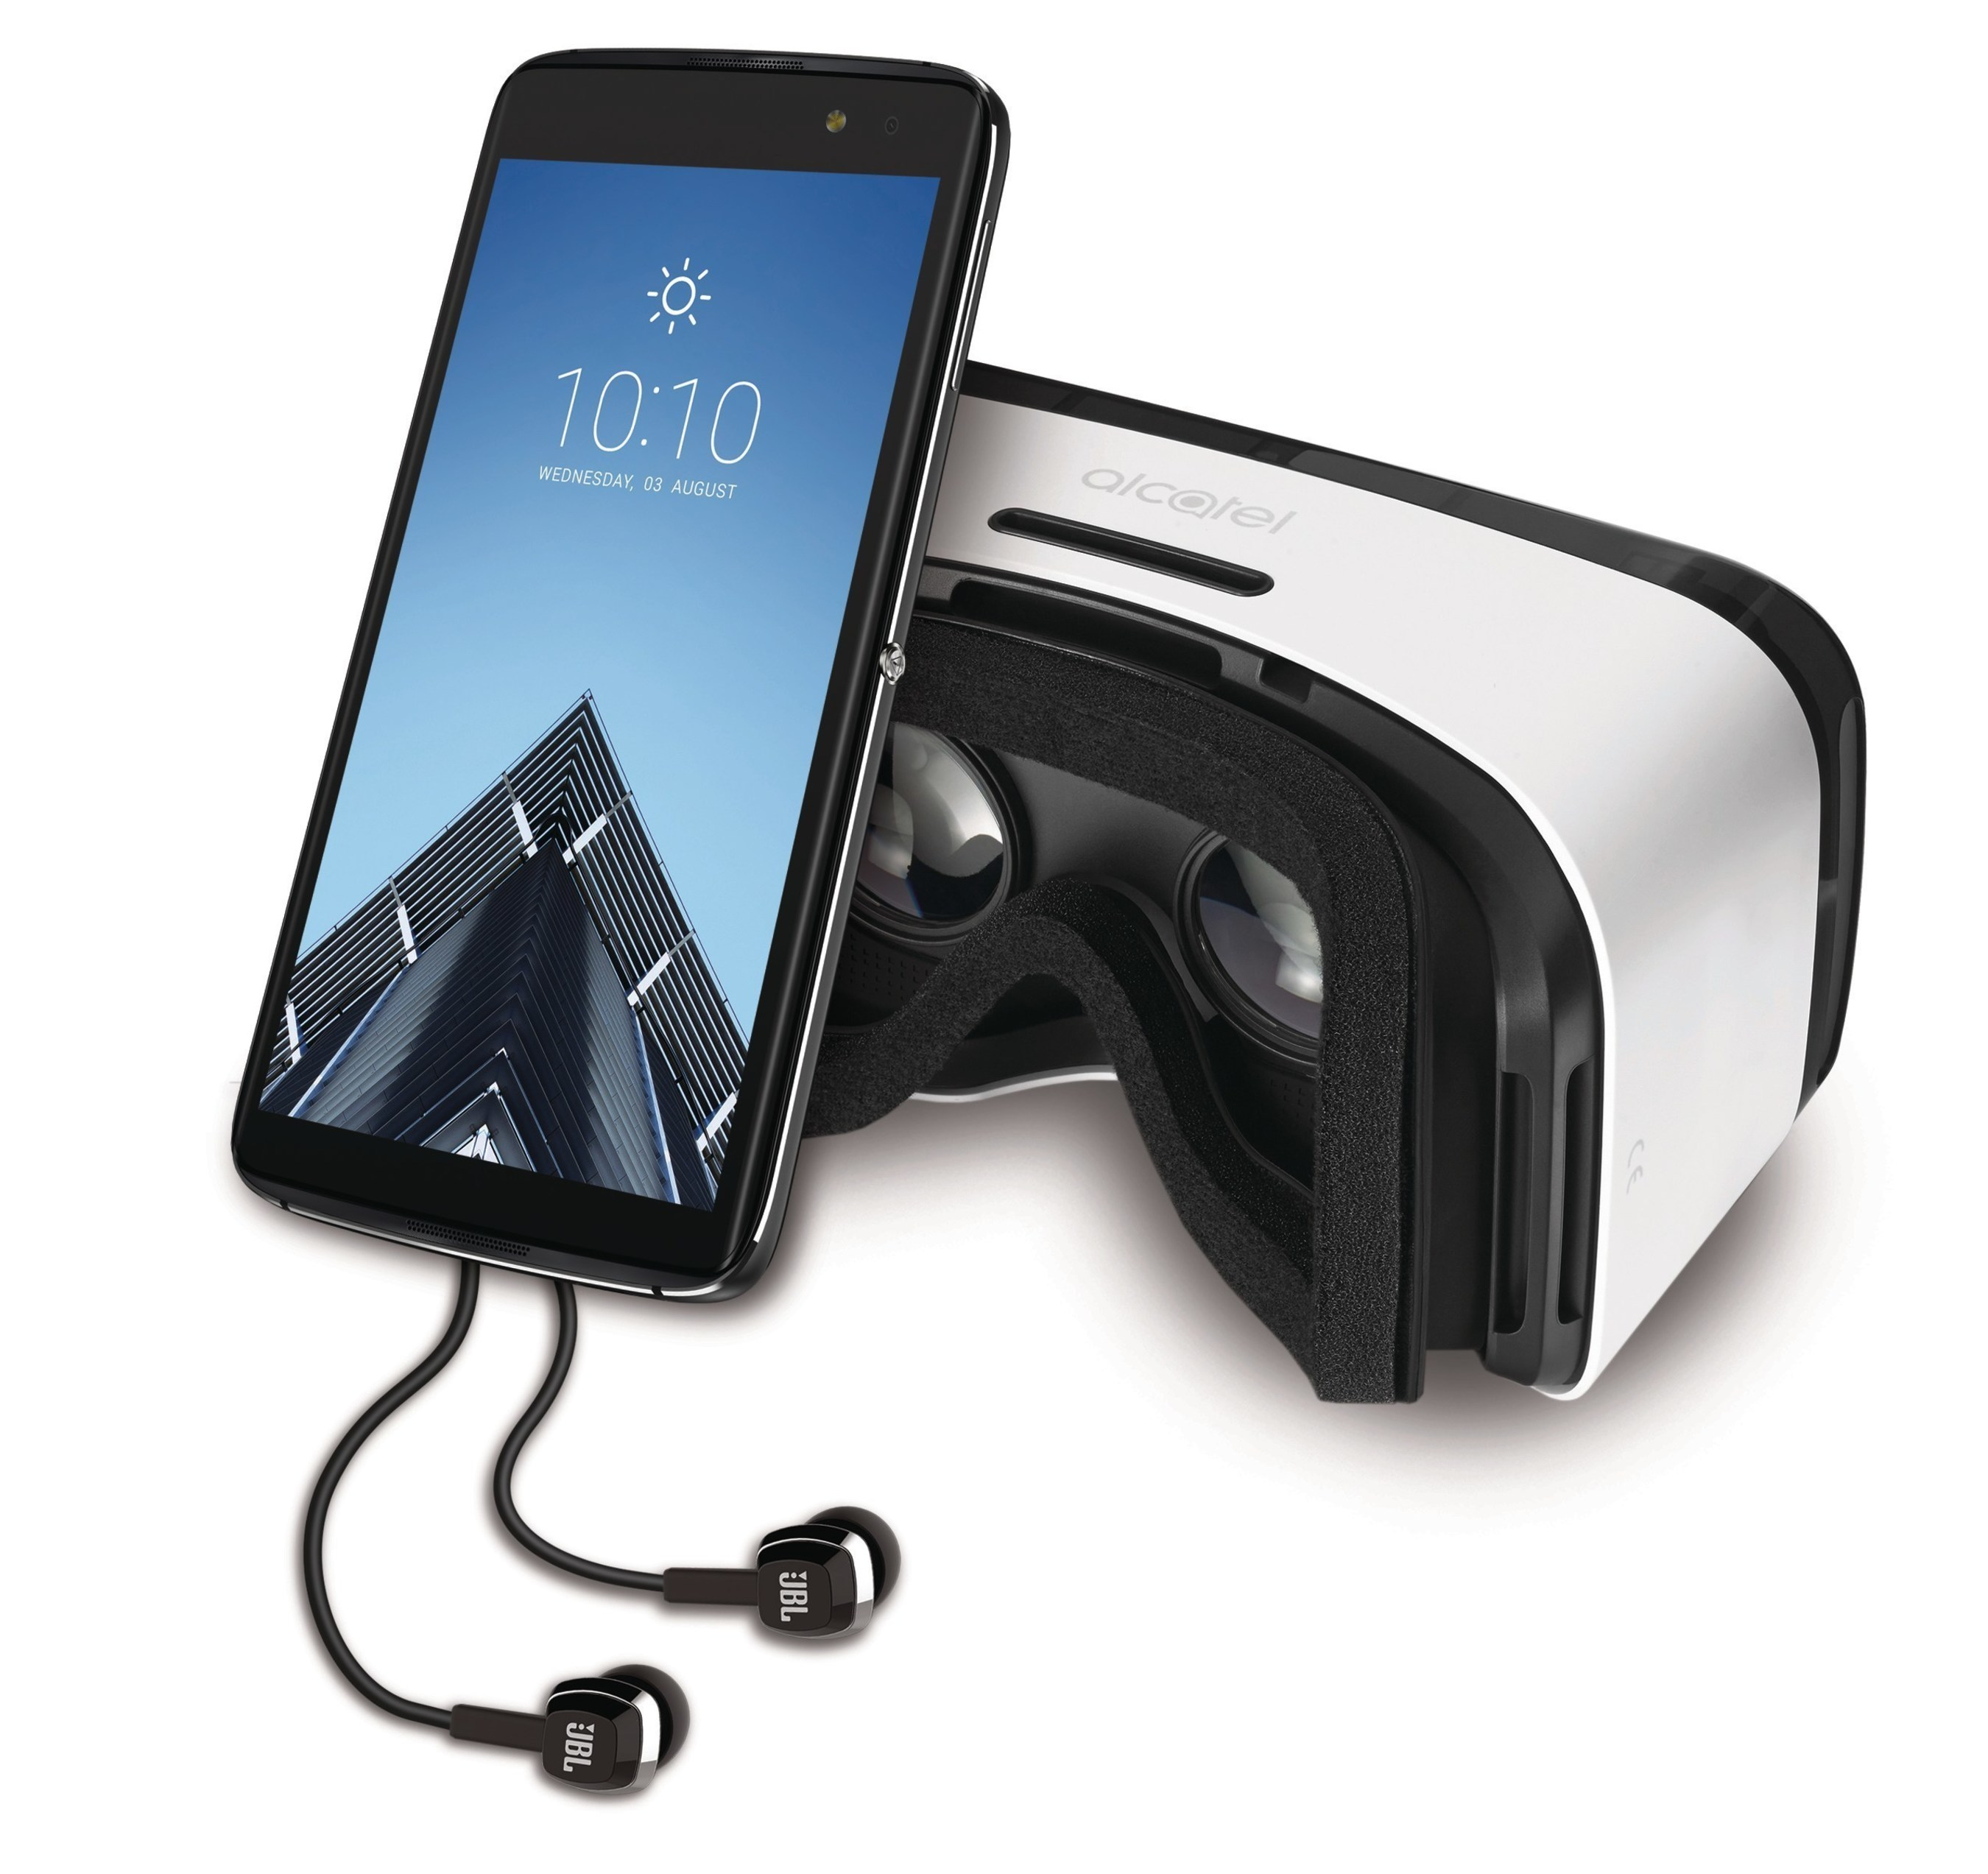 Delivering Unreal Value and User Experiences, Alcatel's IDOL 4S Smartphone Combines the Perfect Amount of Design and Features with an Industry First VR Goggle Packaging Bundle.